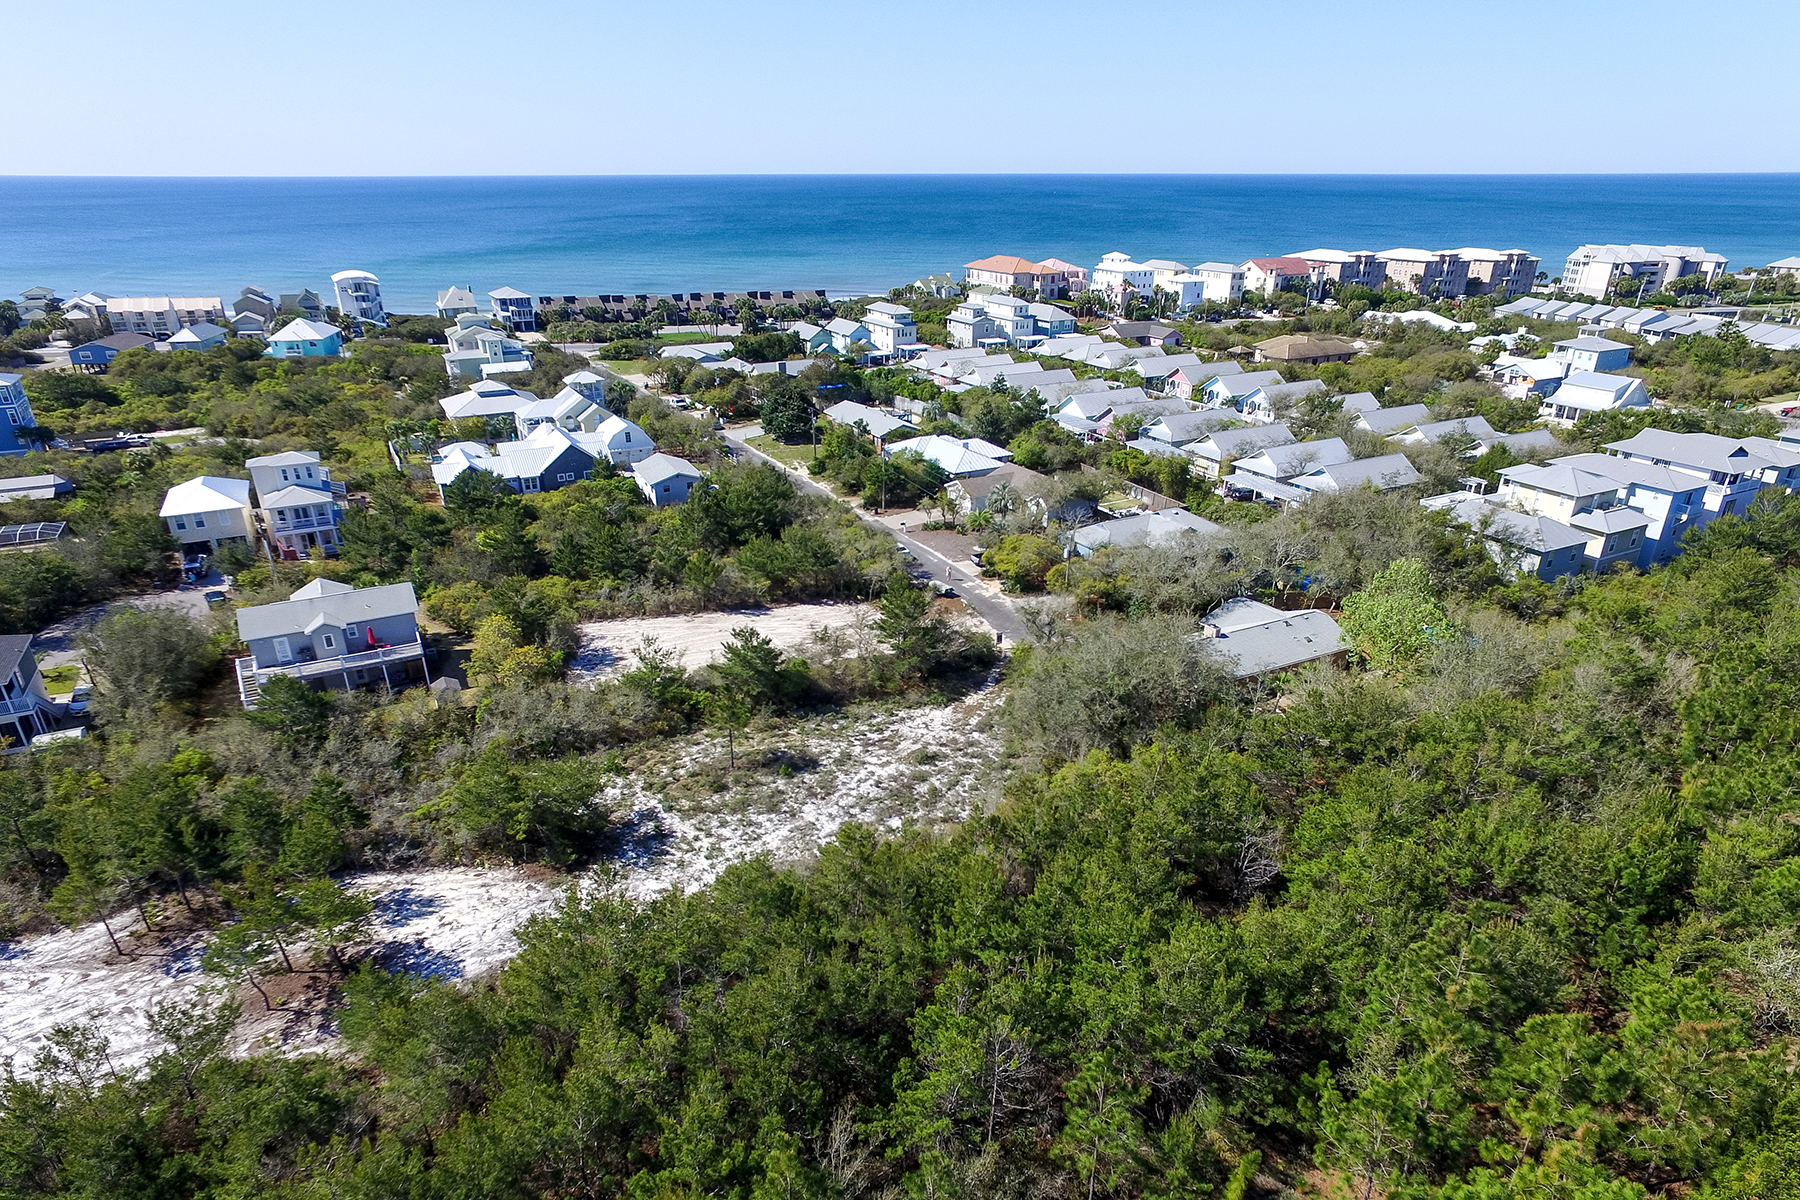 土地 のために 売買 アット NATURALIZED CUL-DE-SAC LOT WITH DEEDED BEACH ACCESS Lot 12 Walton Gulfview Drive Seacrest, フロリダ, 32461 アメリカ合衆国